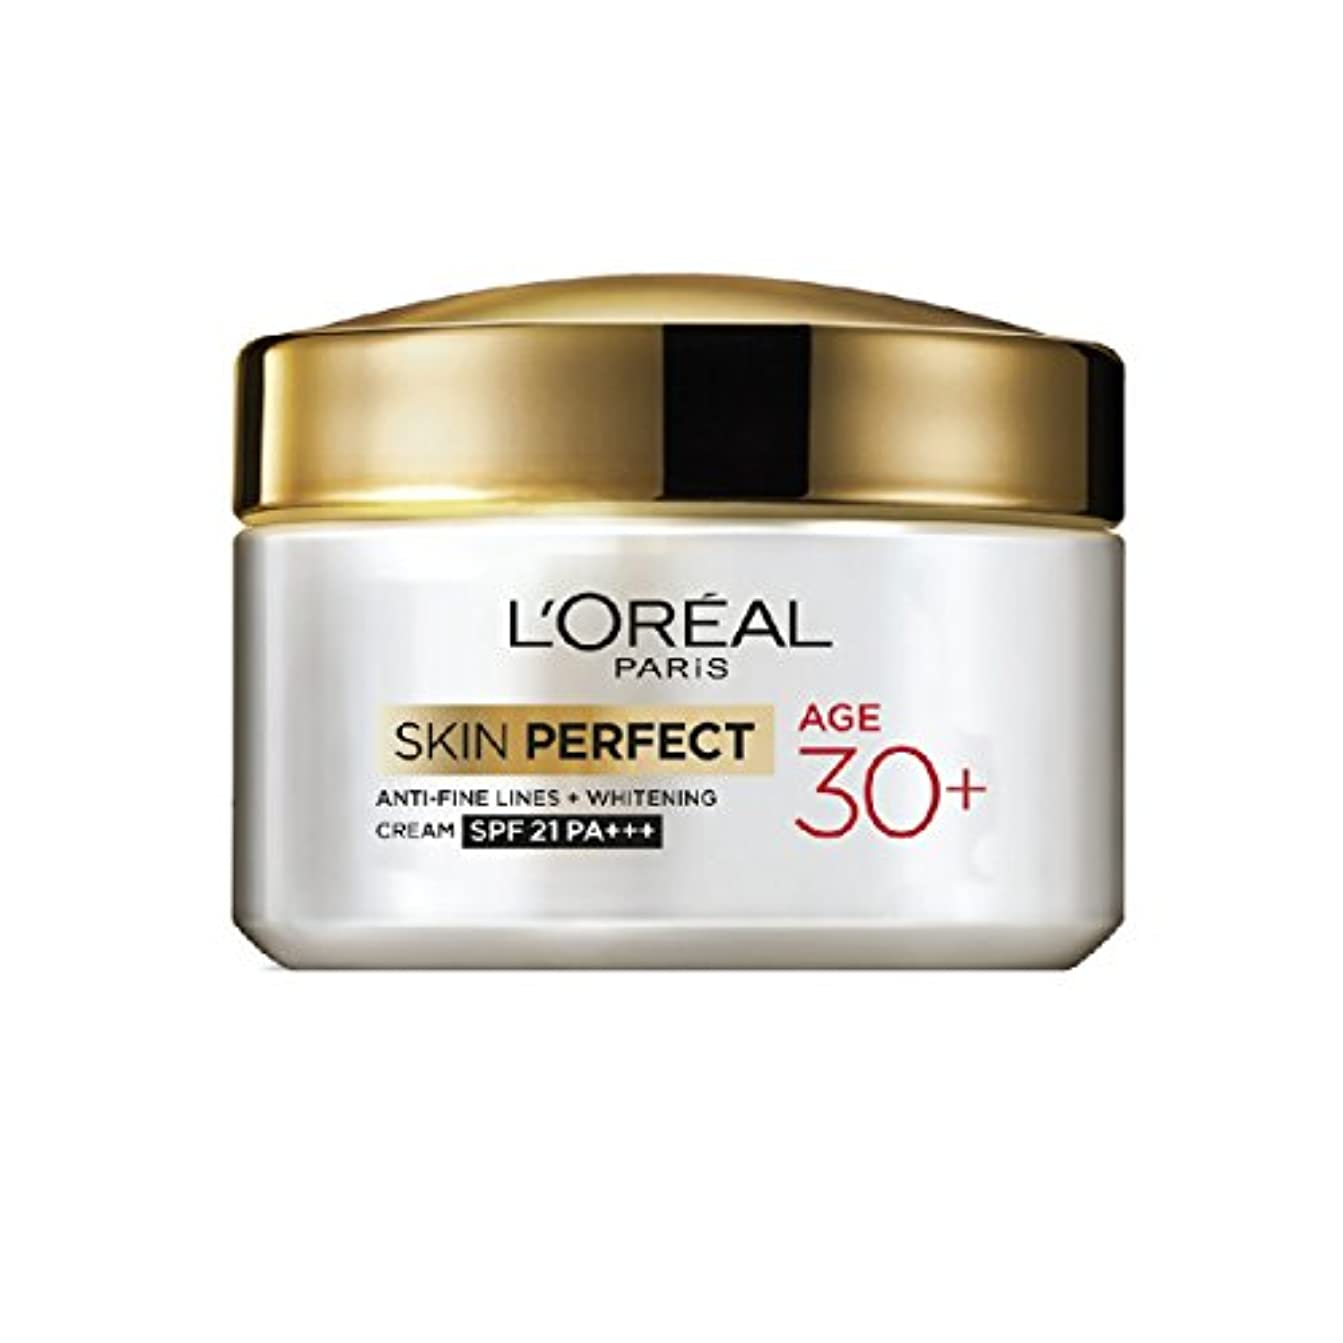 居間宿題をする期待するL'Oreal Paris Perfect Skin 30+ Day Cream, 50g